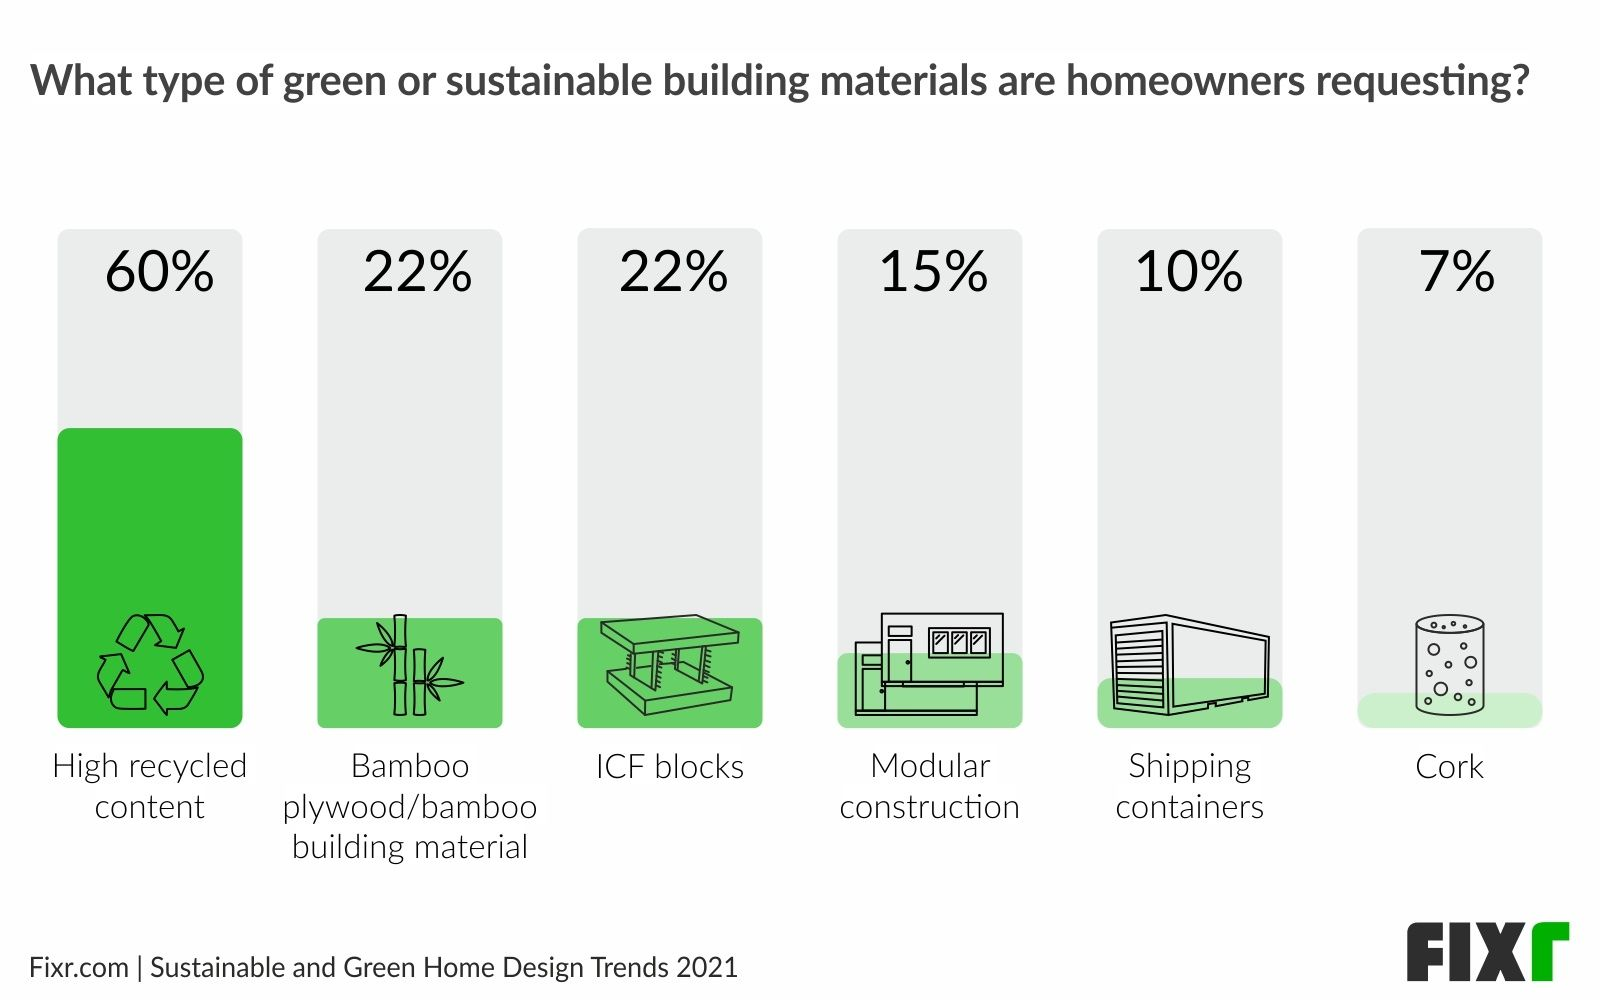 High-Recycled Material is the Most Requested Sustainable Building Material